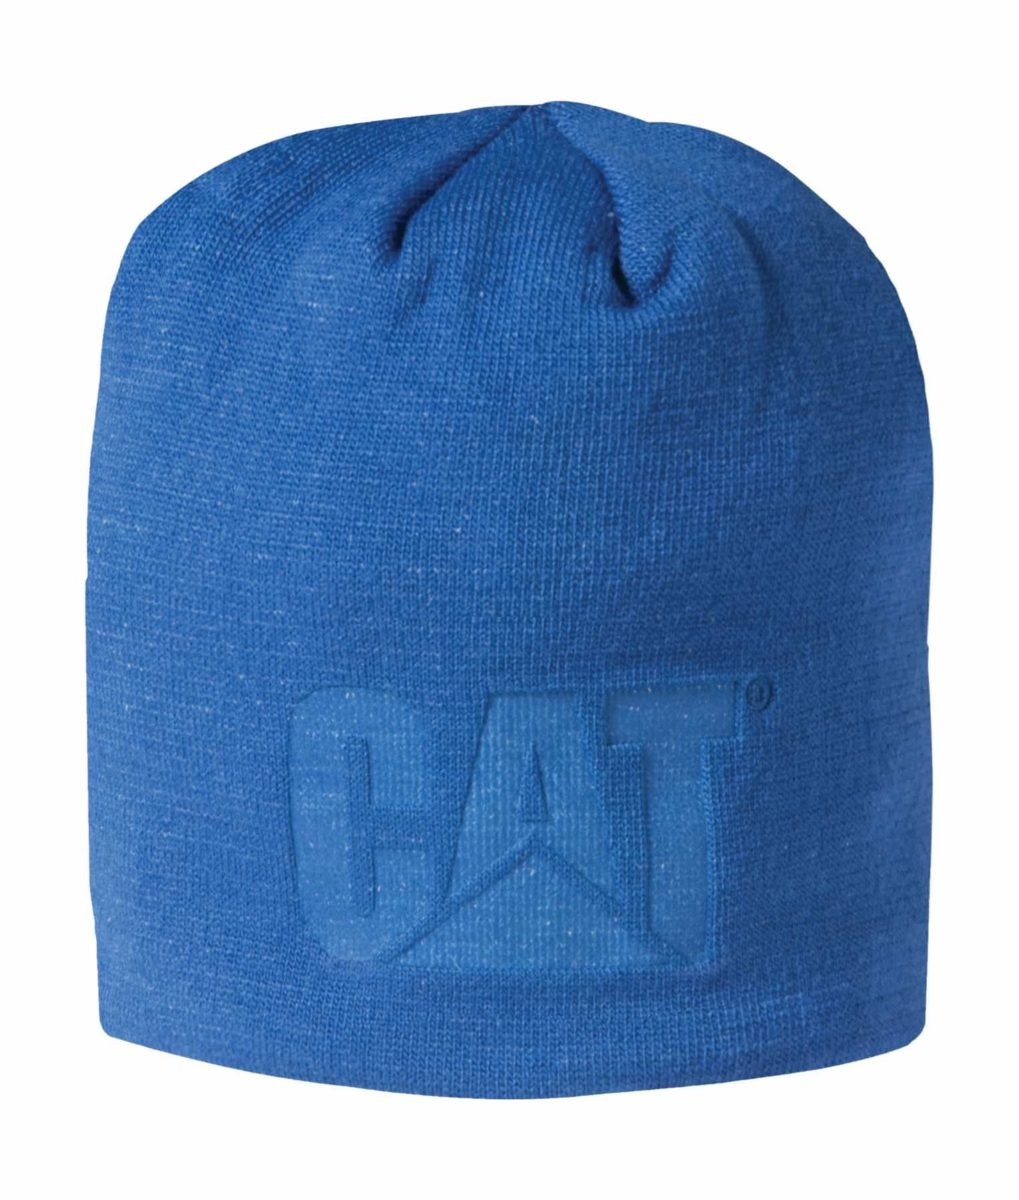 CAT Trademark Knit Beanie